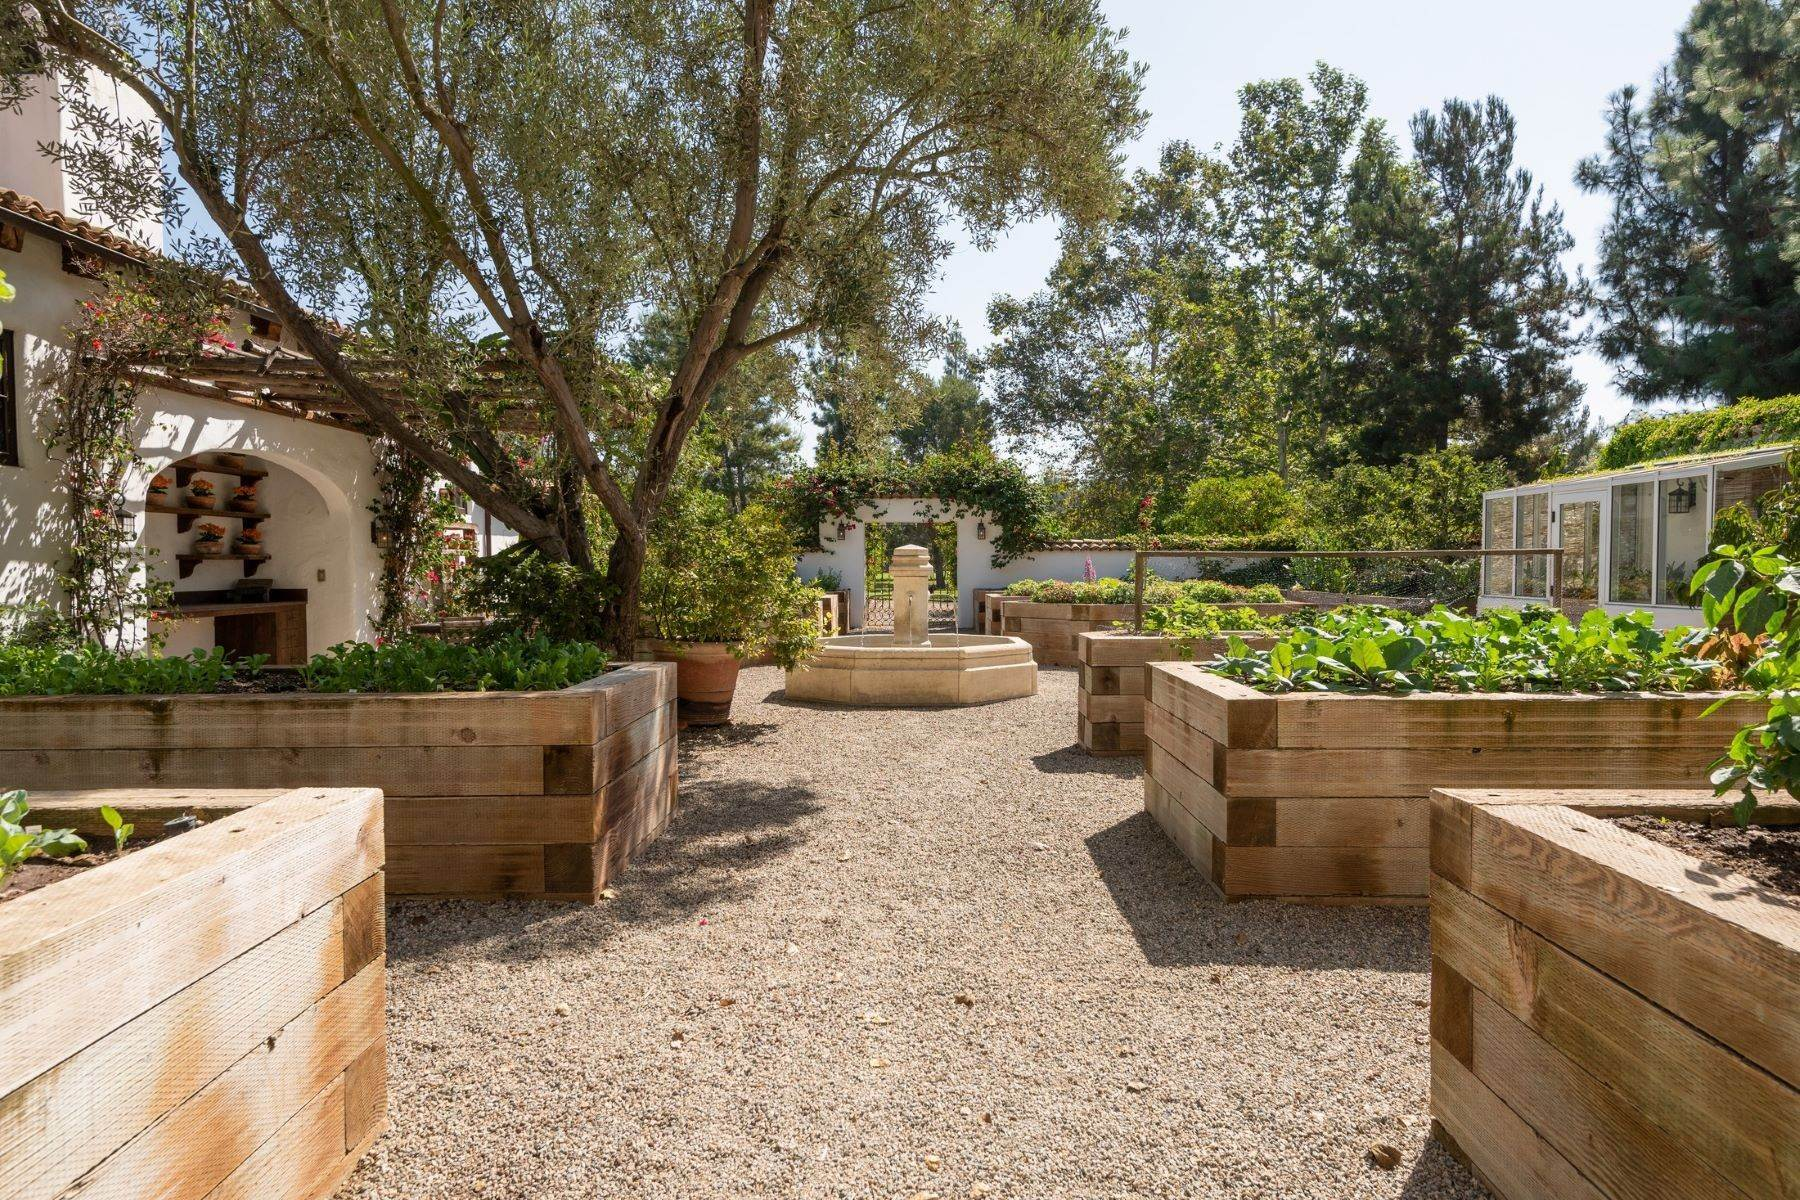 19. Farm and Ranch Properties for Sale at 16401 Calle Feliz, Rancho Santa Fe, Ca, 92067 Rancho Santa Fe, California 92067 United States